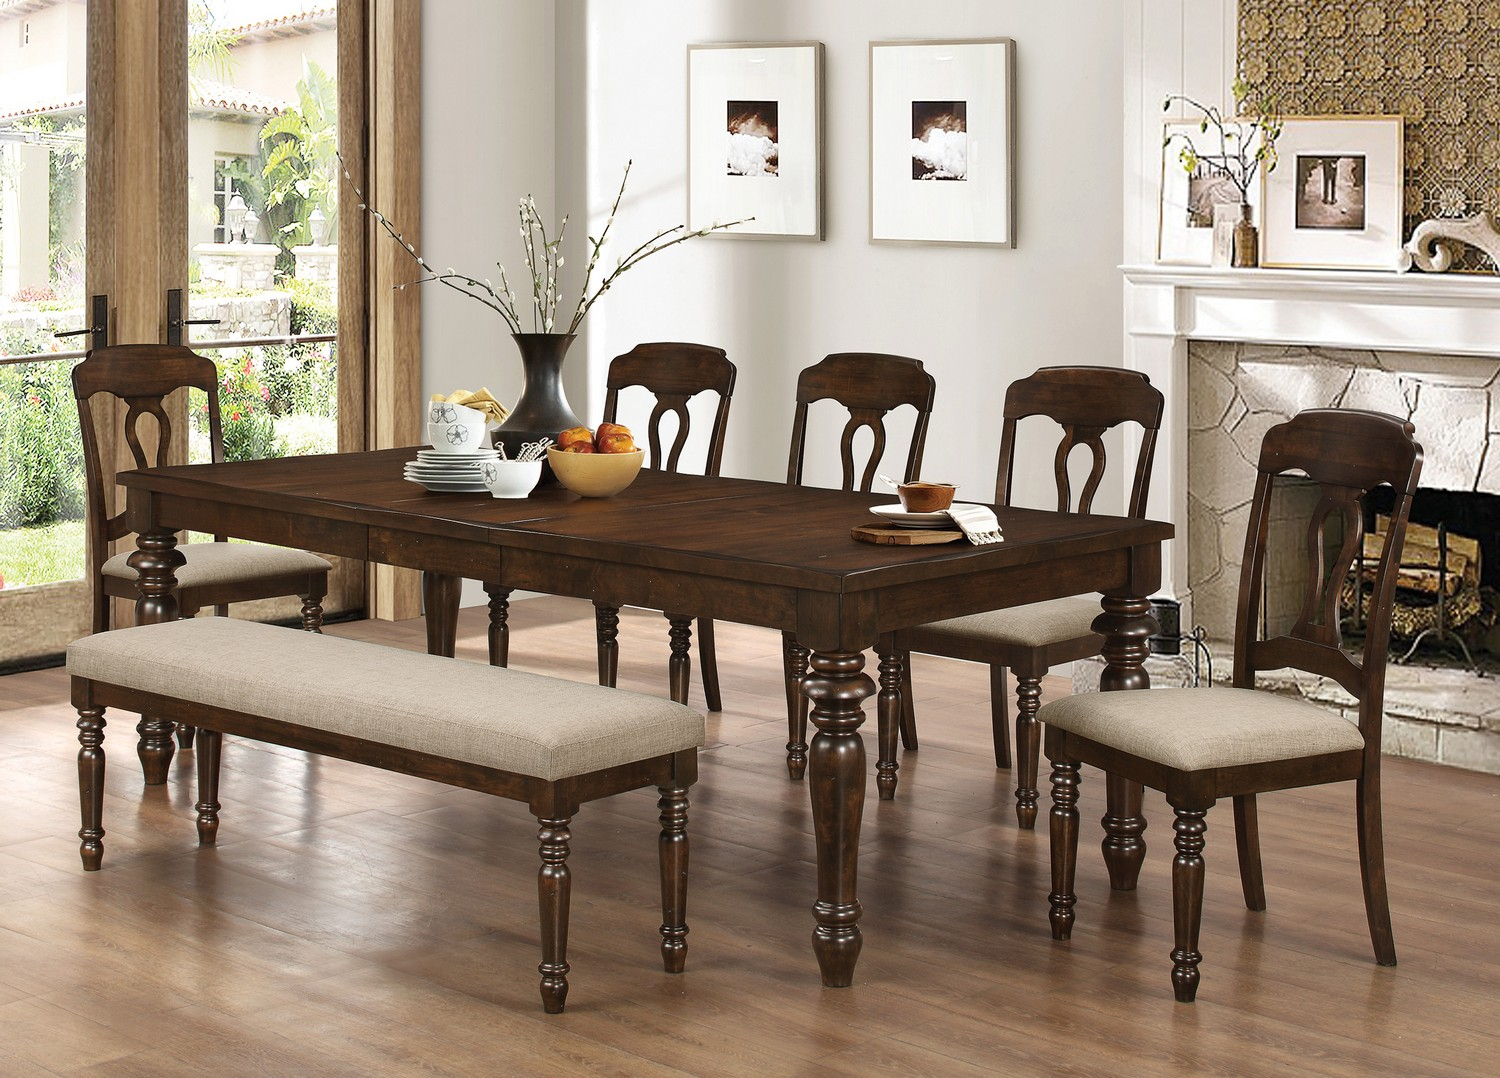 Coaster Hamilton Dining Set - Antique Tobacco